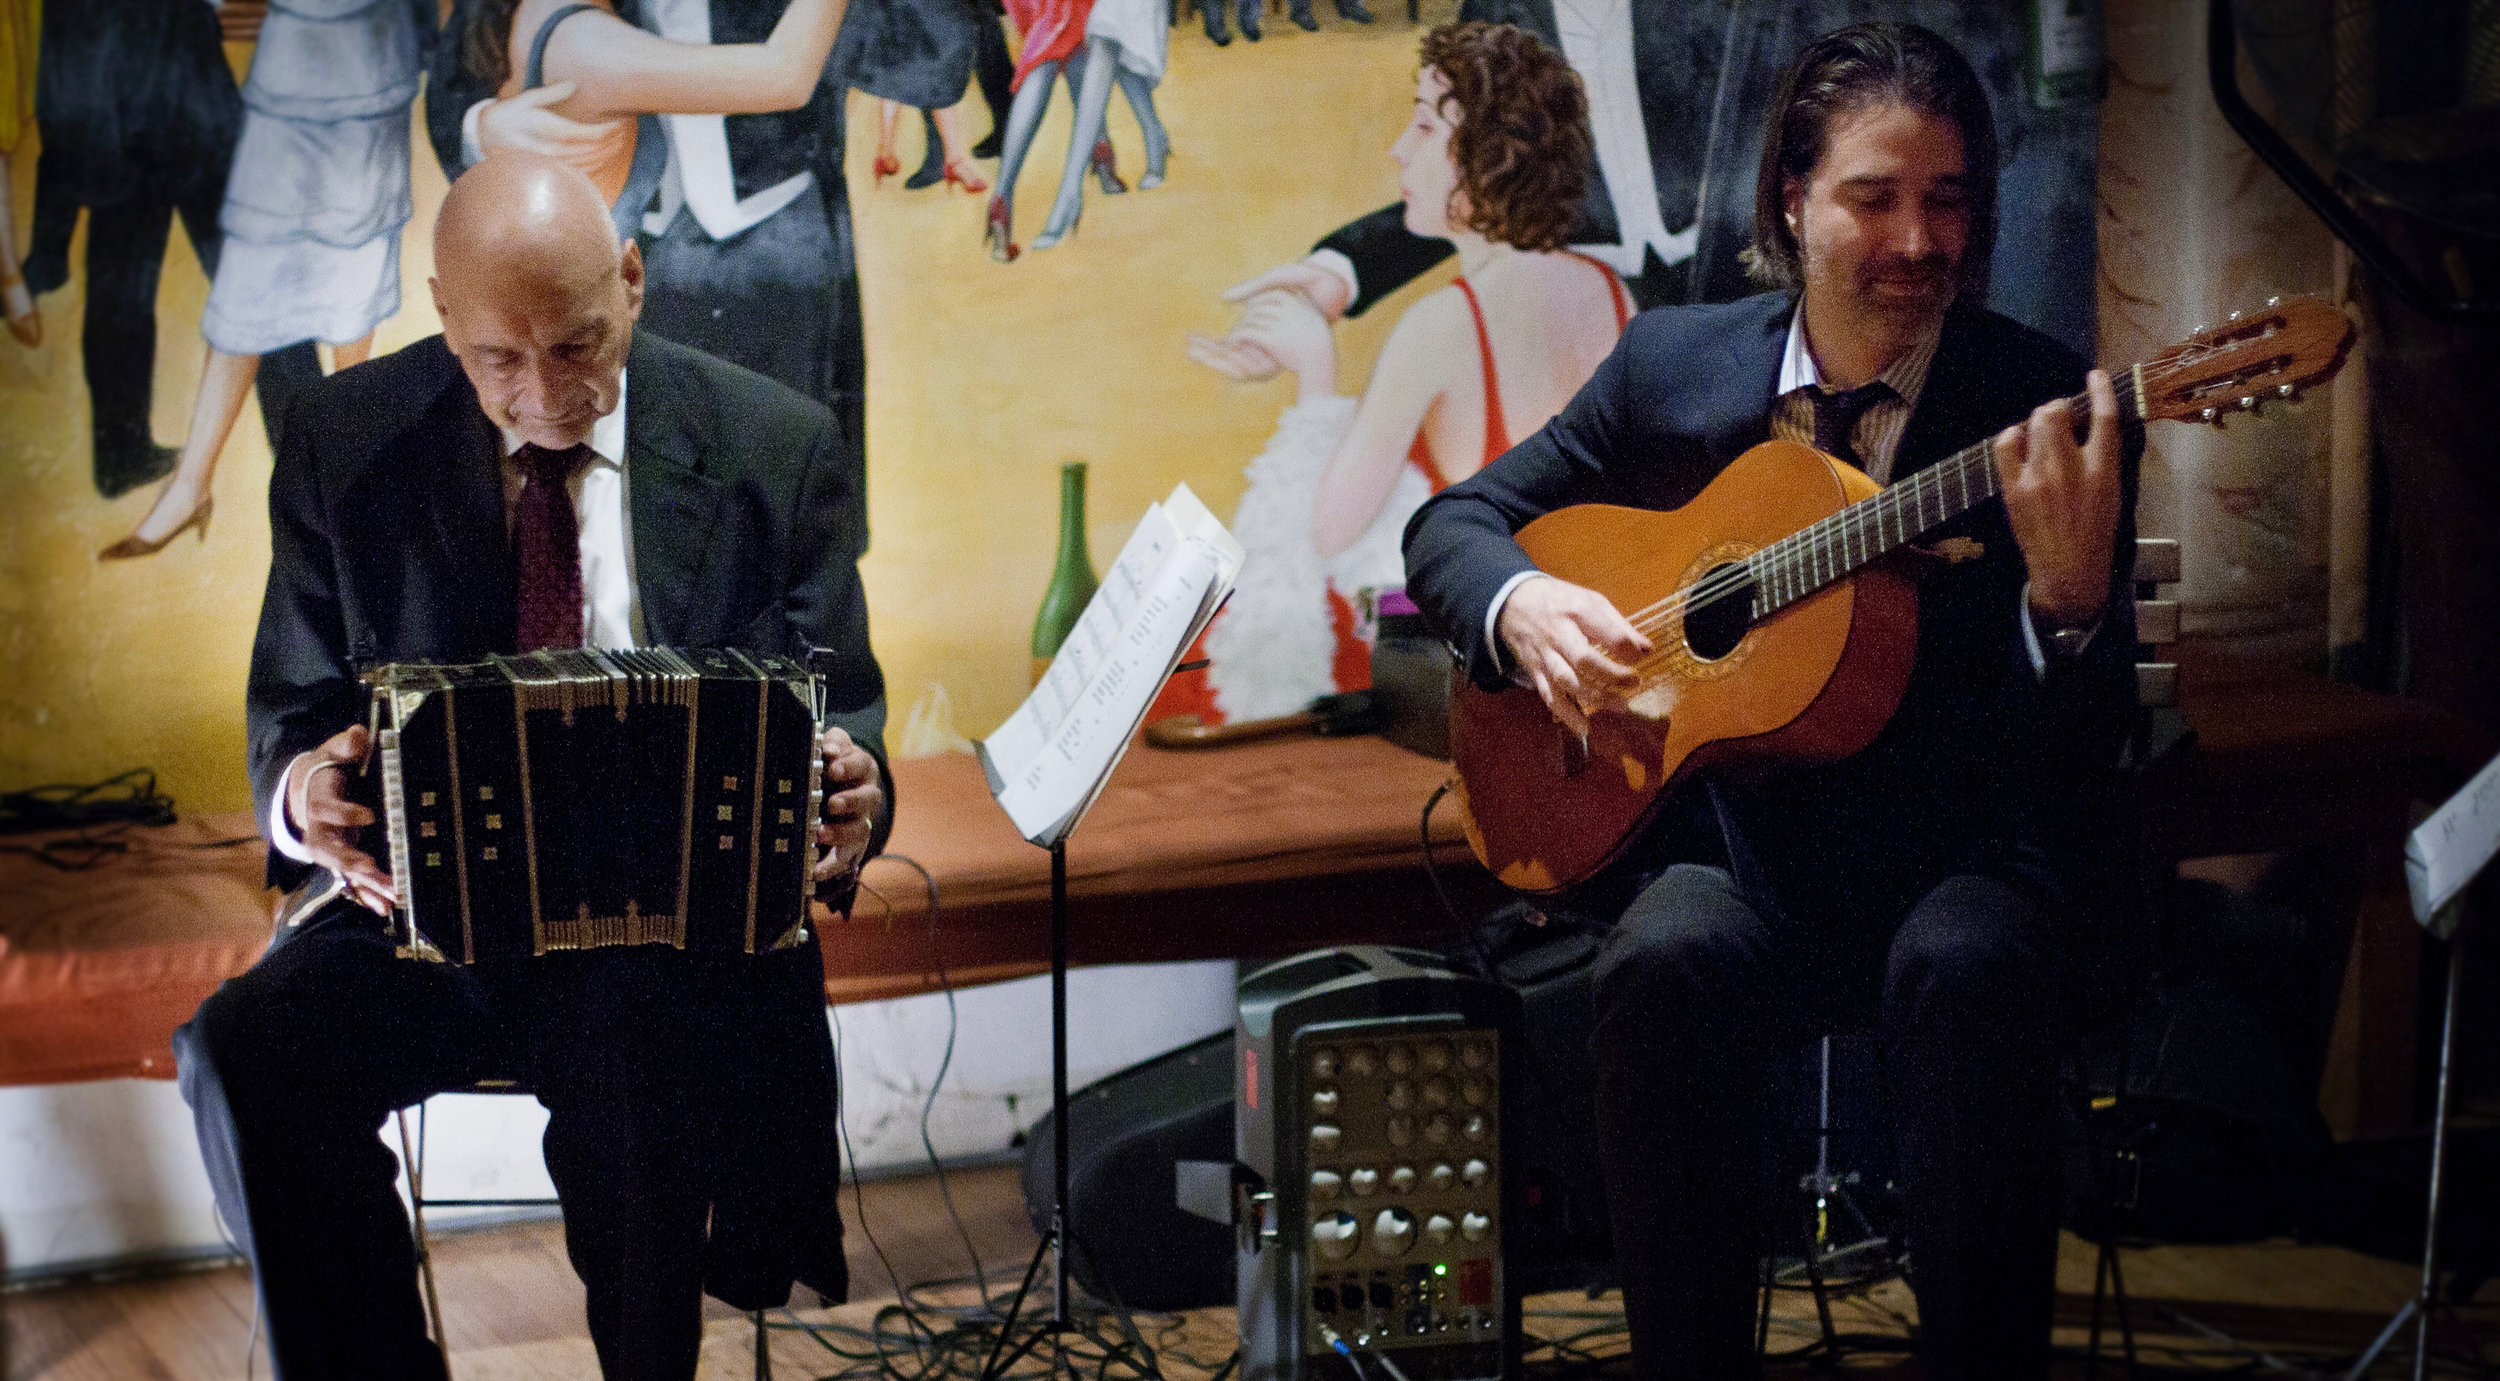 2014 - New York. Bandoneonist Tito Castro was one of the first tango musicians I ever played with. Here we are accompanying a milonga (tango social dance).